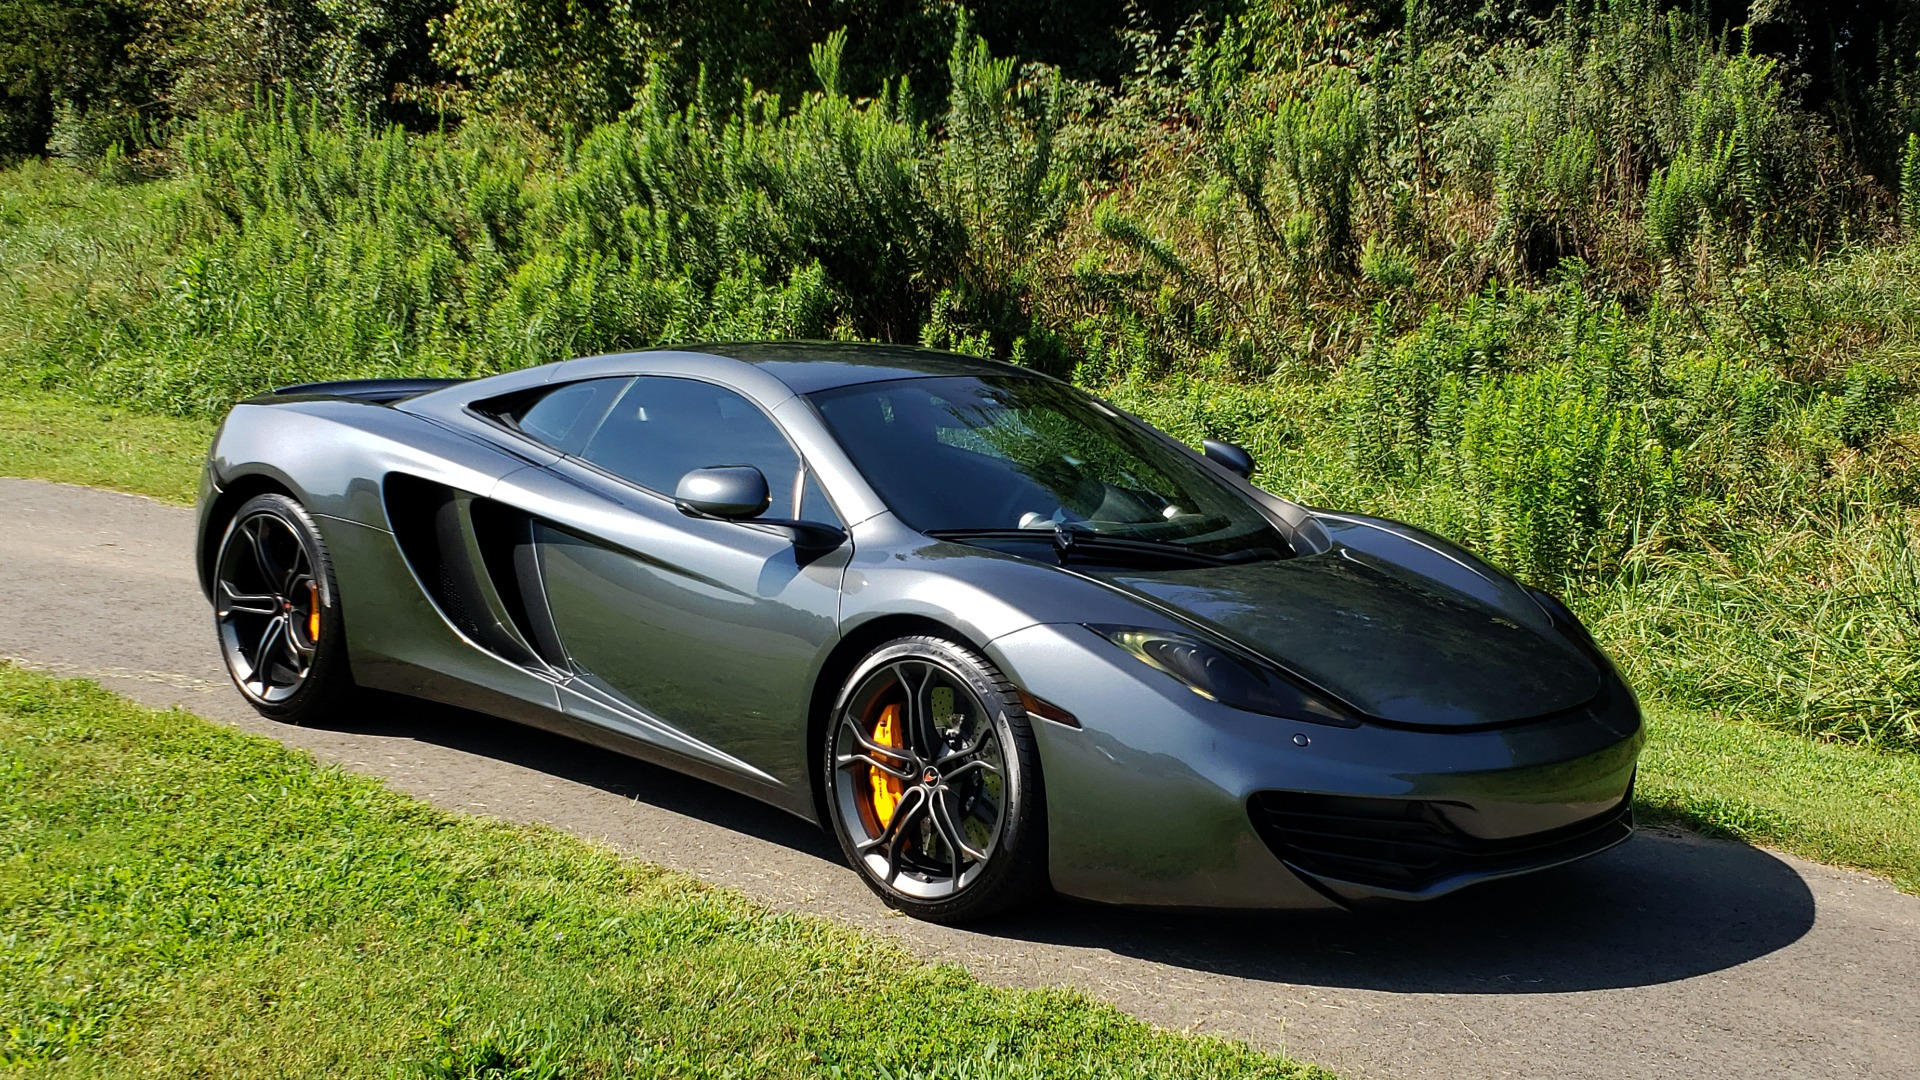 Used 2012 McLaren MP4-12C COUPE / 3.8 L V8 592HP / AUTO / NAV / CCB / LOW MILES for sale Sold at Formula Imports in Charlotte NC 28227 19